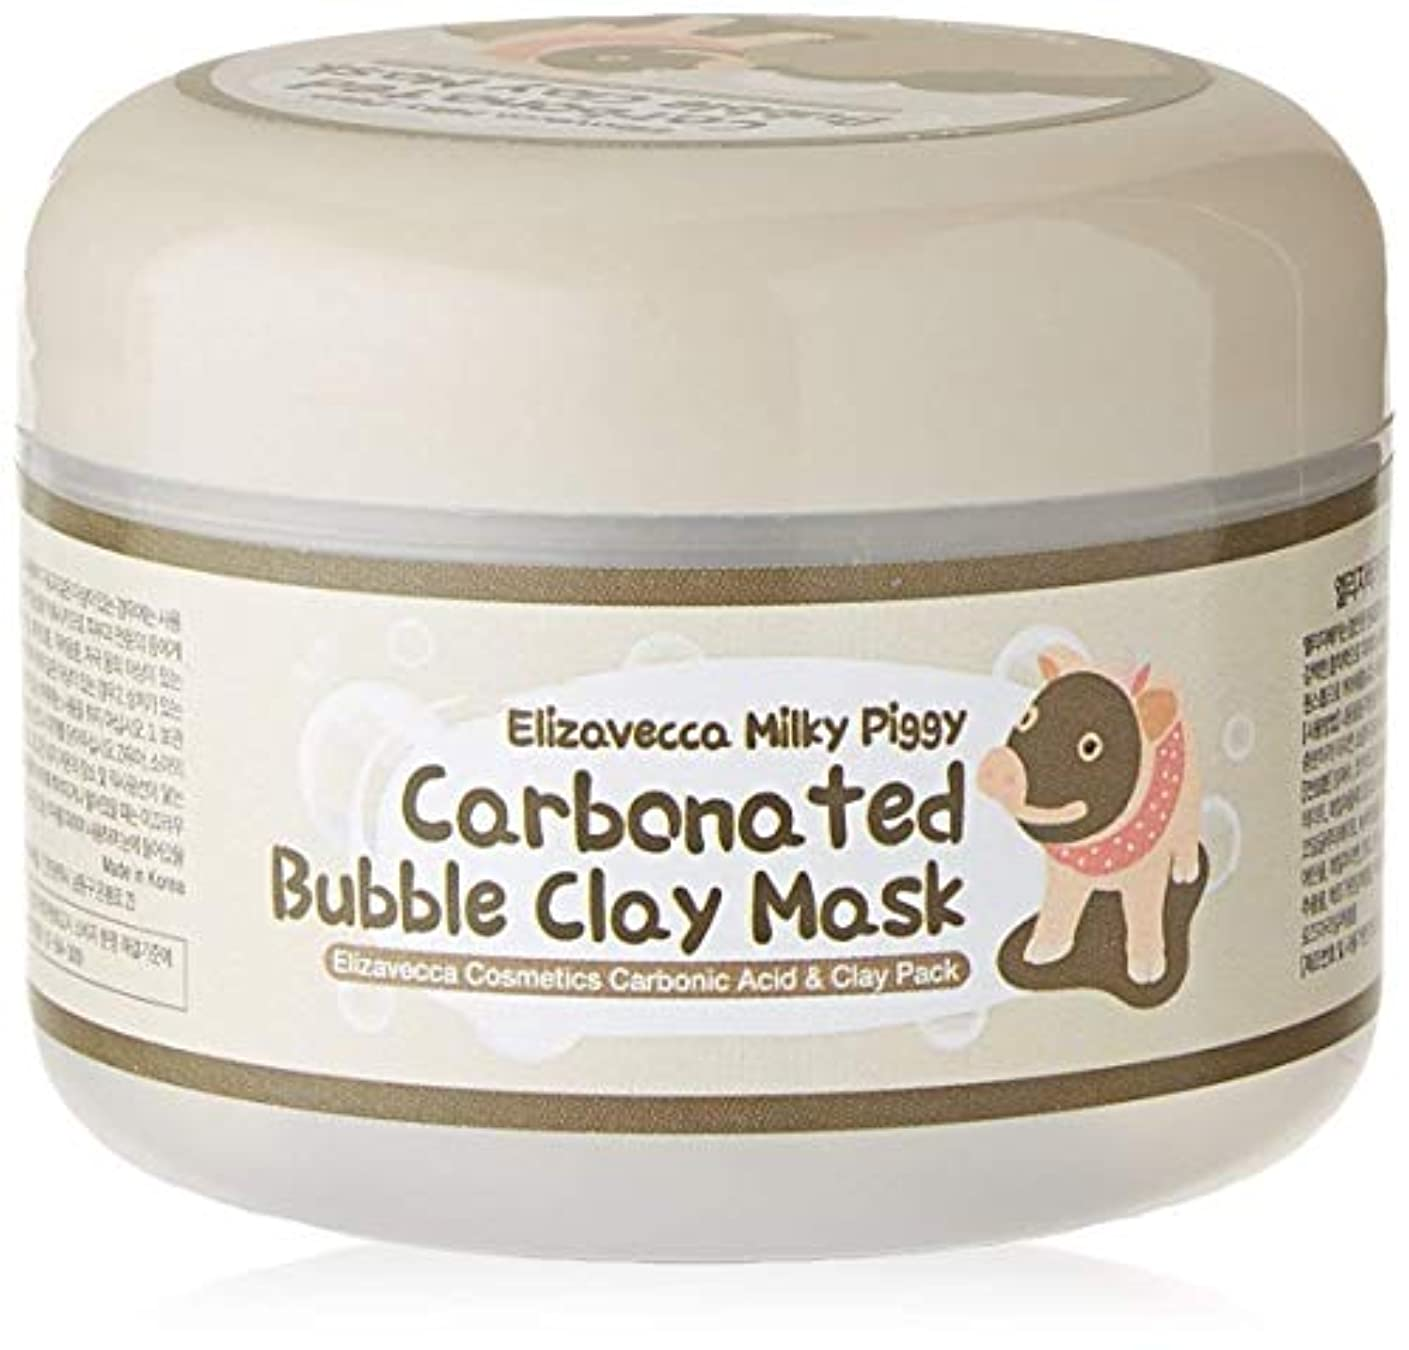 ドアミラースケッチ変えるElizavecca Milky Piggy Carbonated Bubble Clay Mask 100g